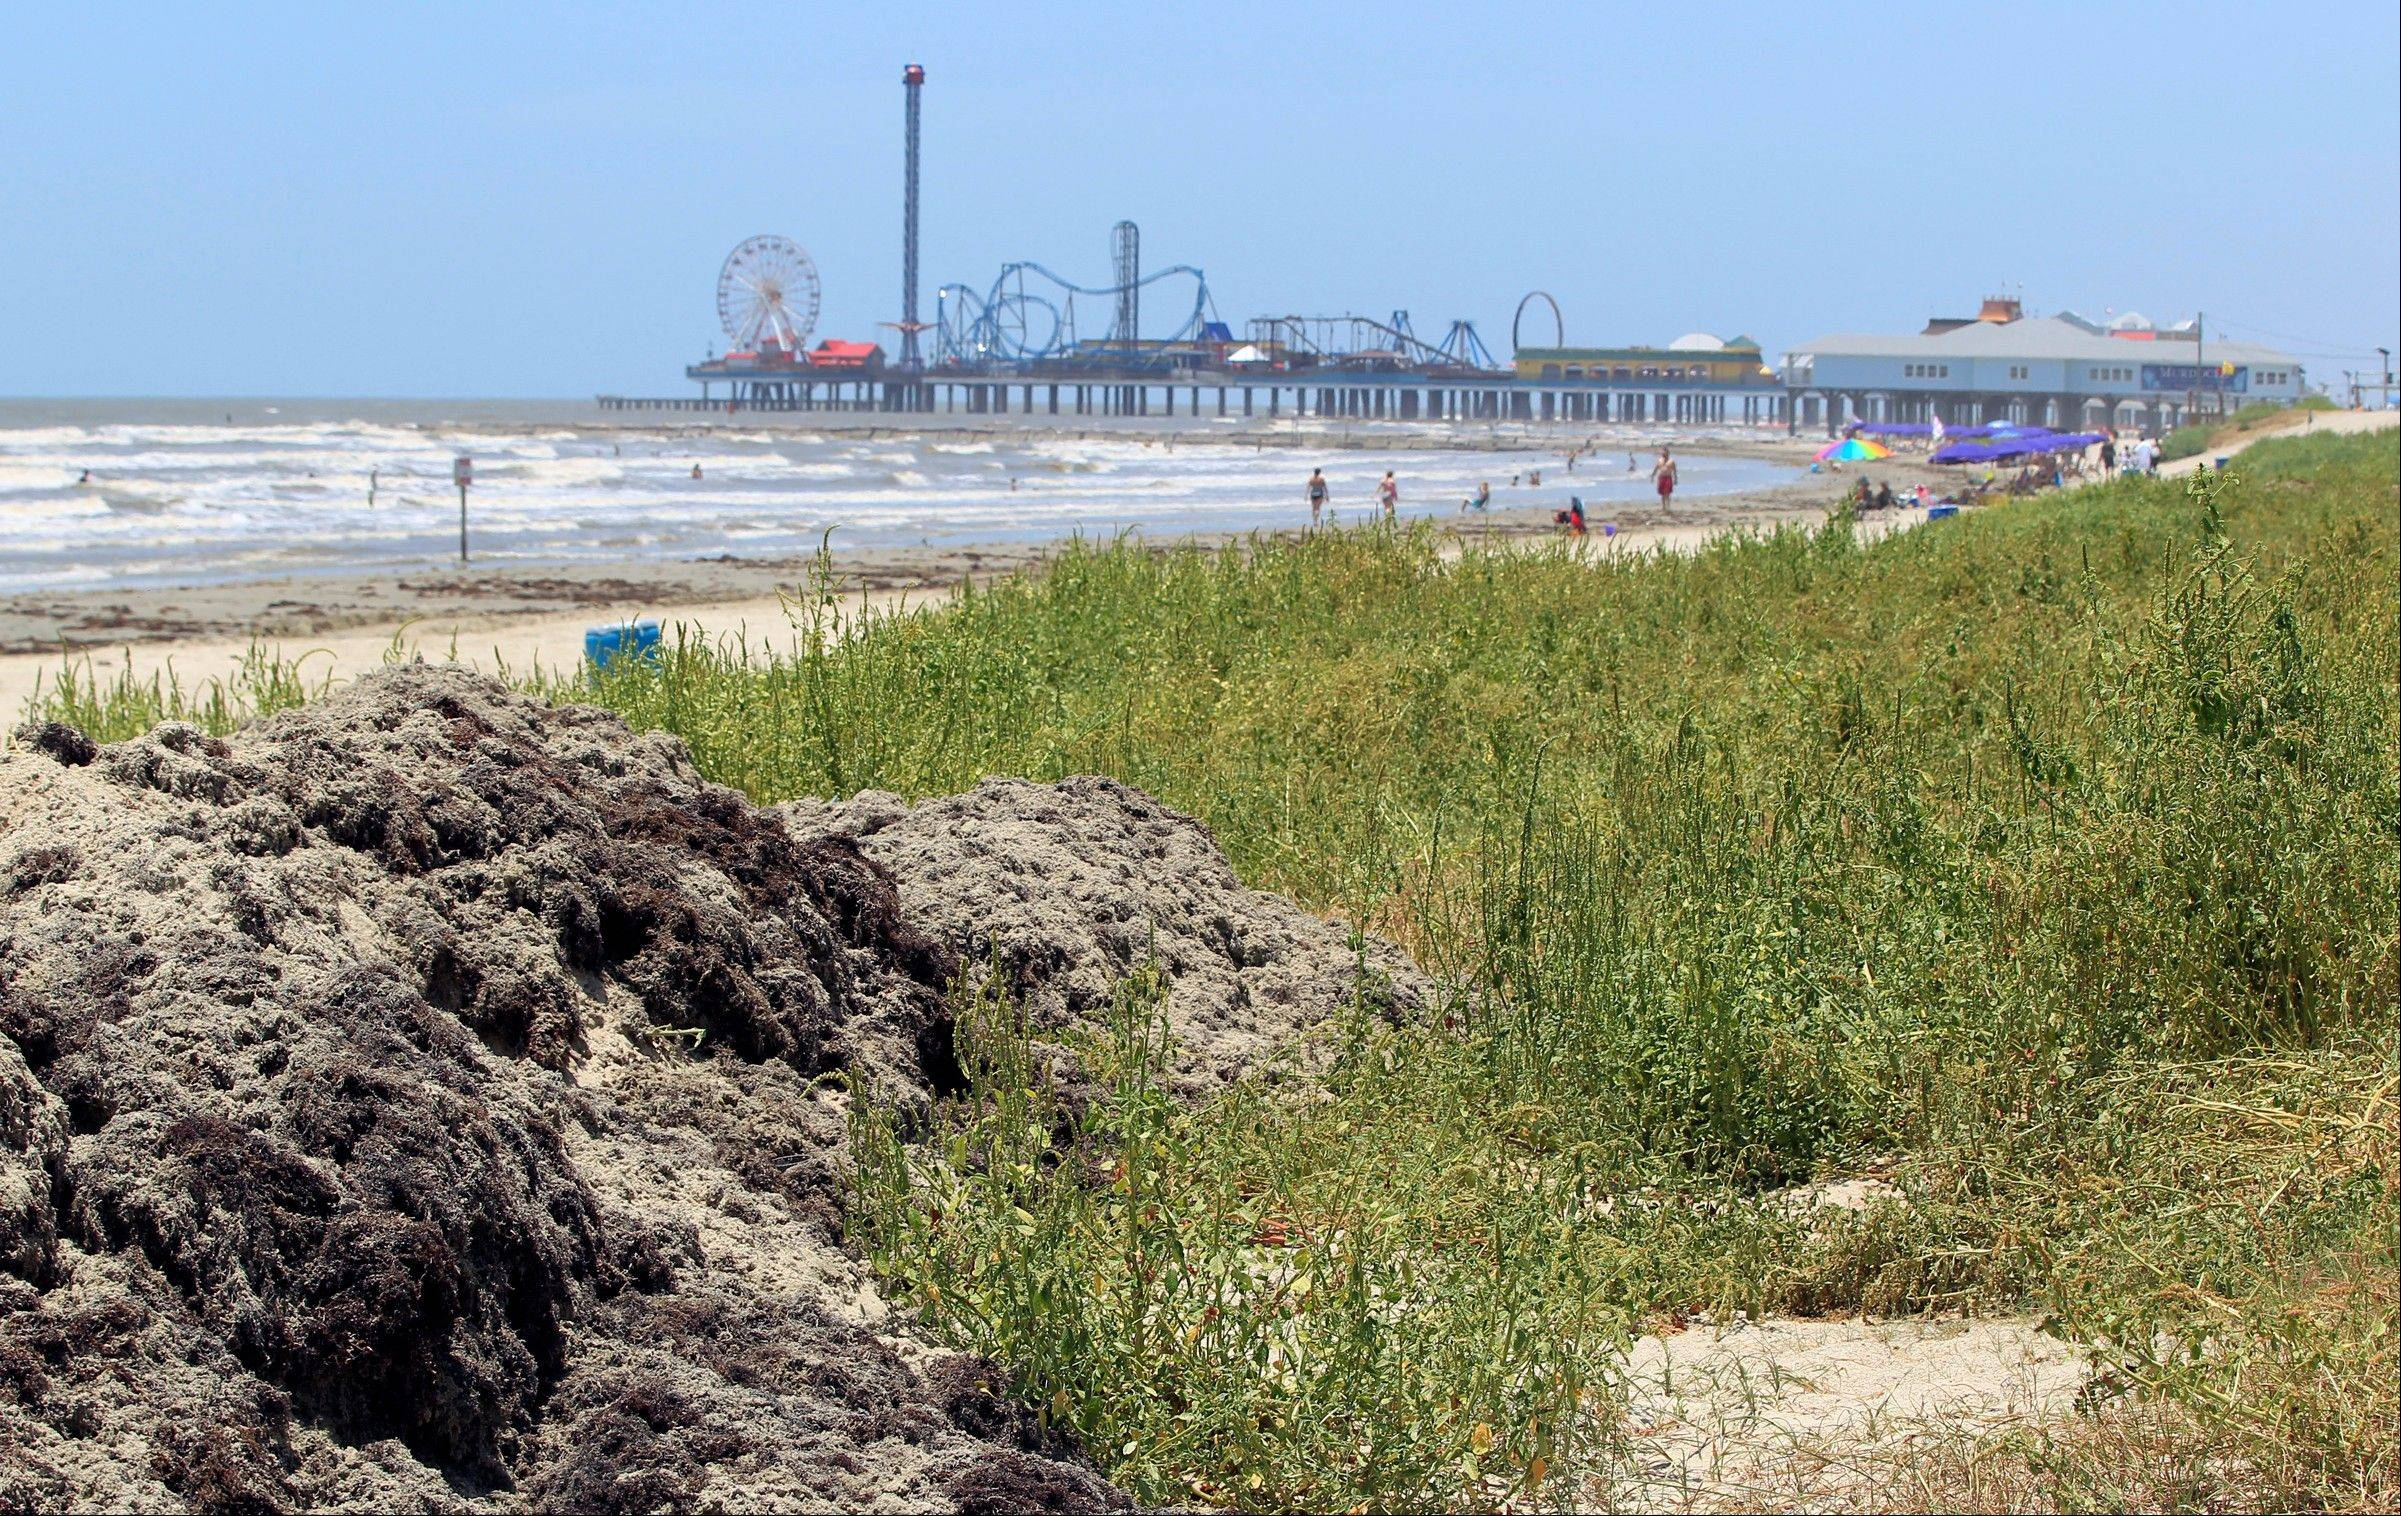 Seaweed scraped from the beach near 17th Street in Galveston, Texas, is piled into dunes where vegetation is already growing over decomposing seaweed. The Park Board of Trustees voted unanimously to support projects that will create �seaweed-enhanced sand dunes on the island.